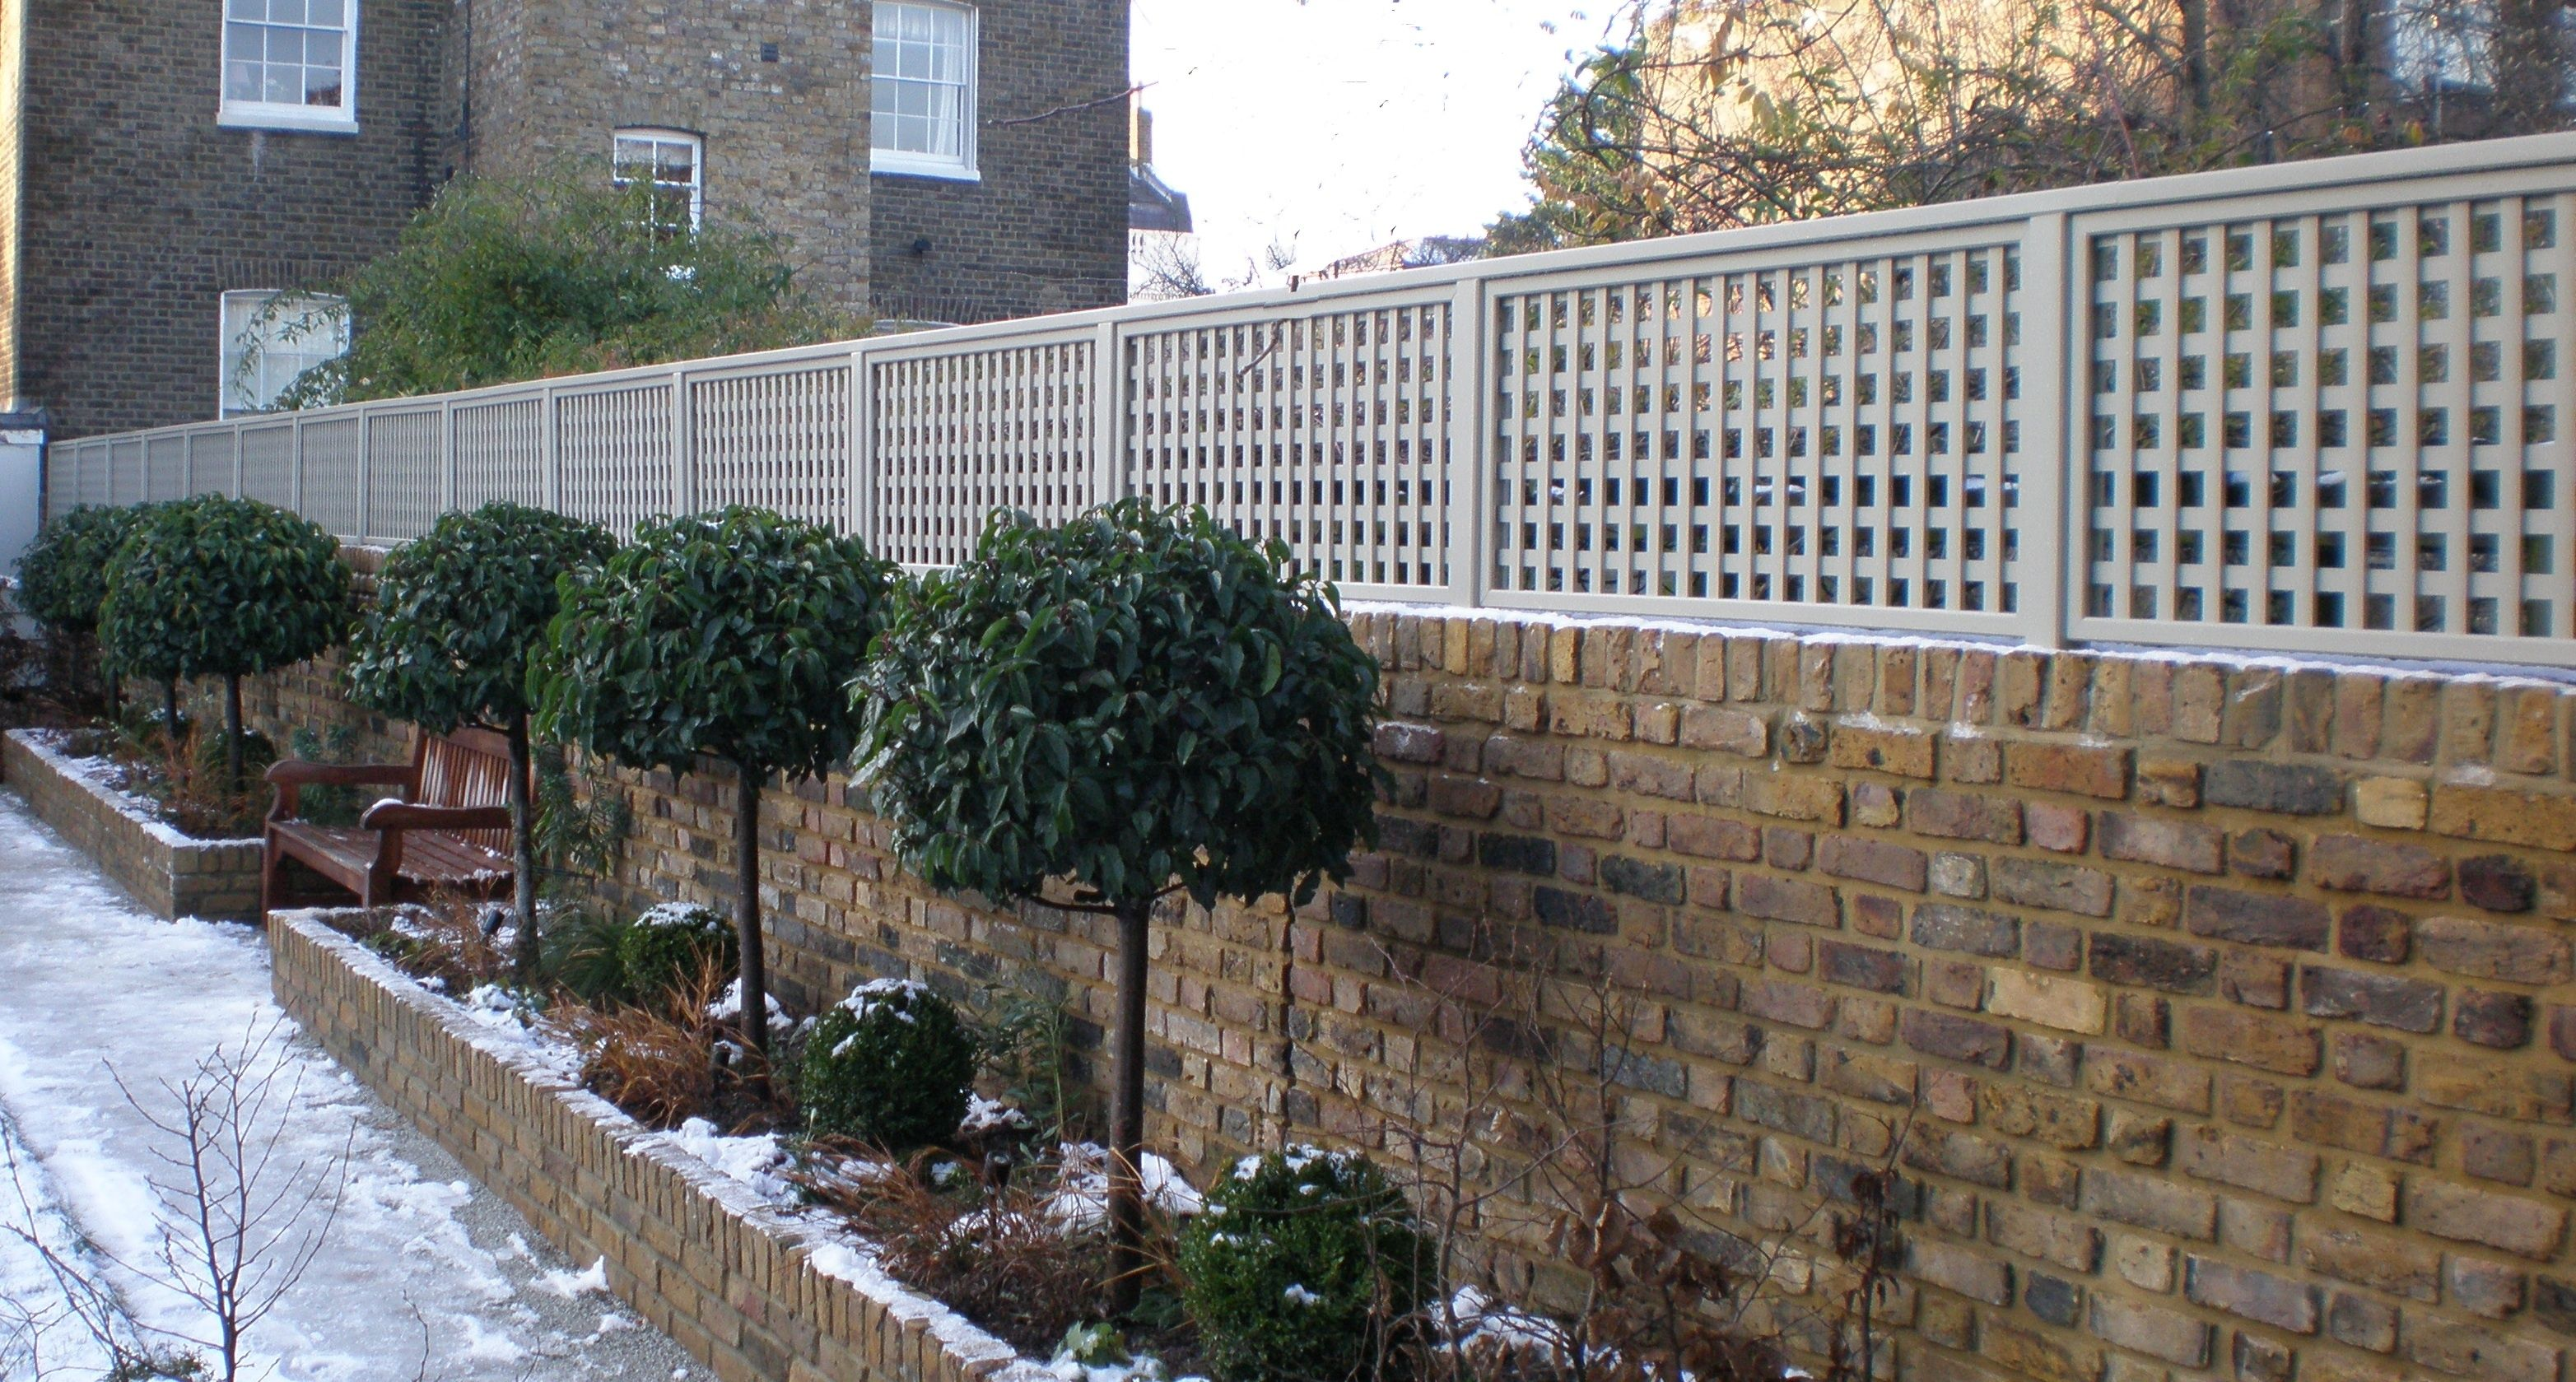 Charmant Trellis Painted Light Grey On Top Of Brick Wall. Raised Bed With Standard  Trees